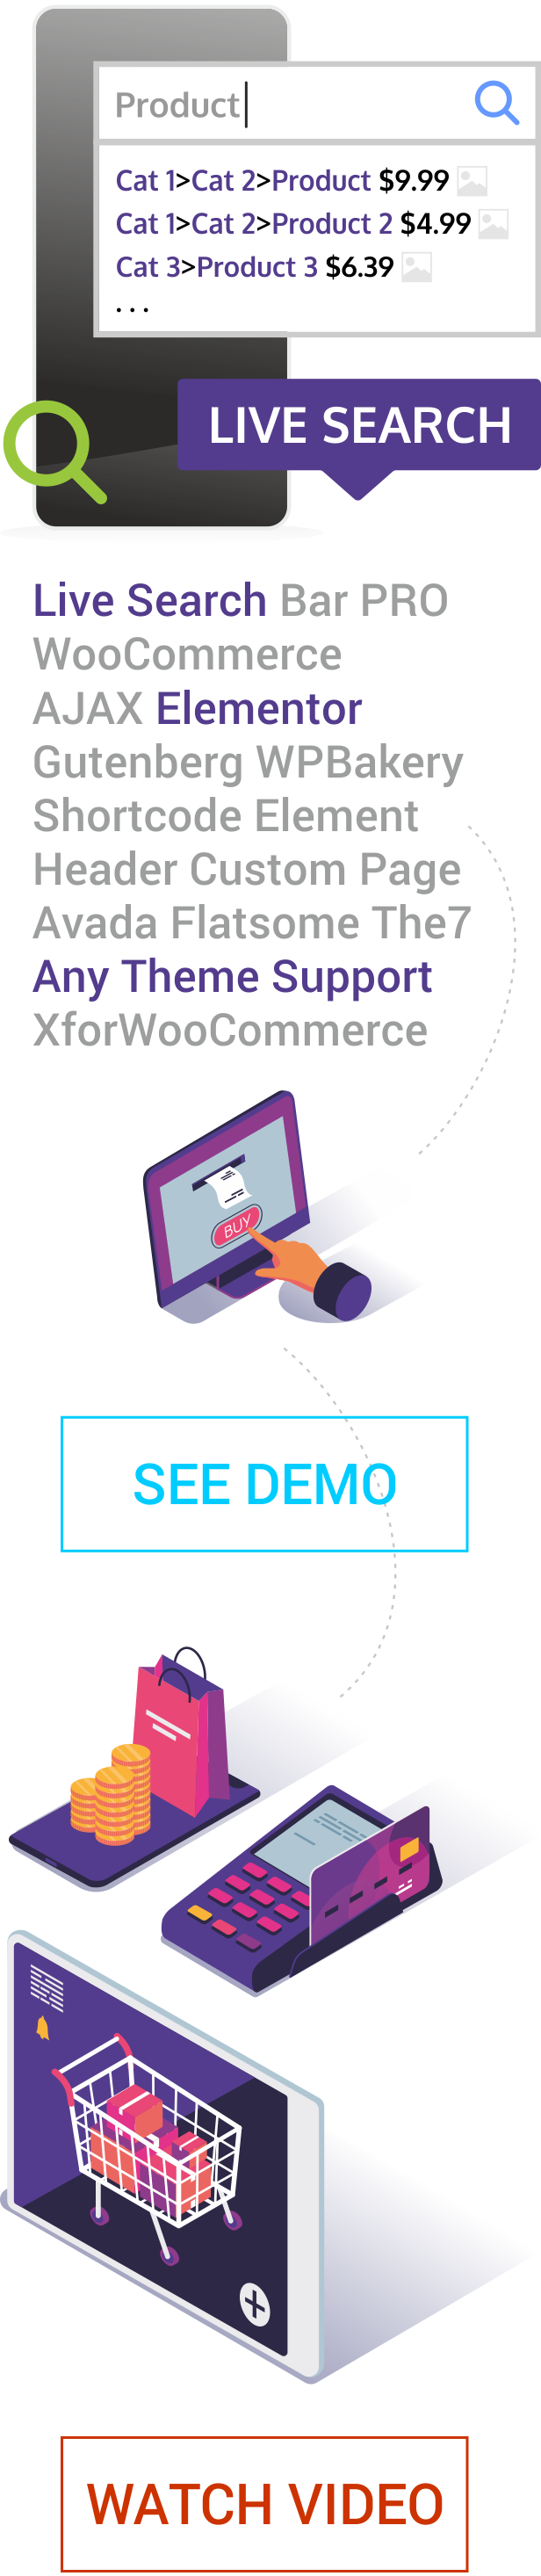 Live Search for WooCommerce - 2